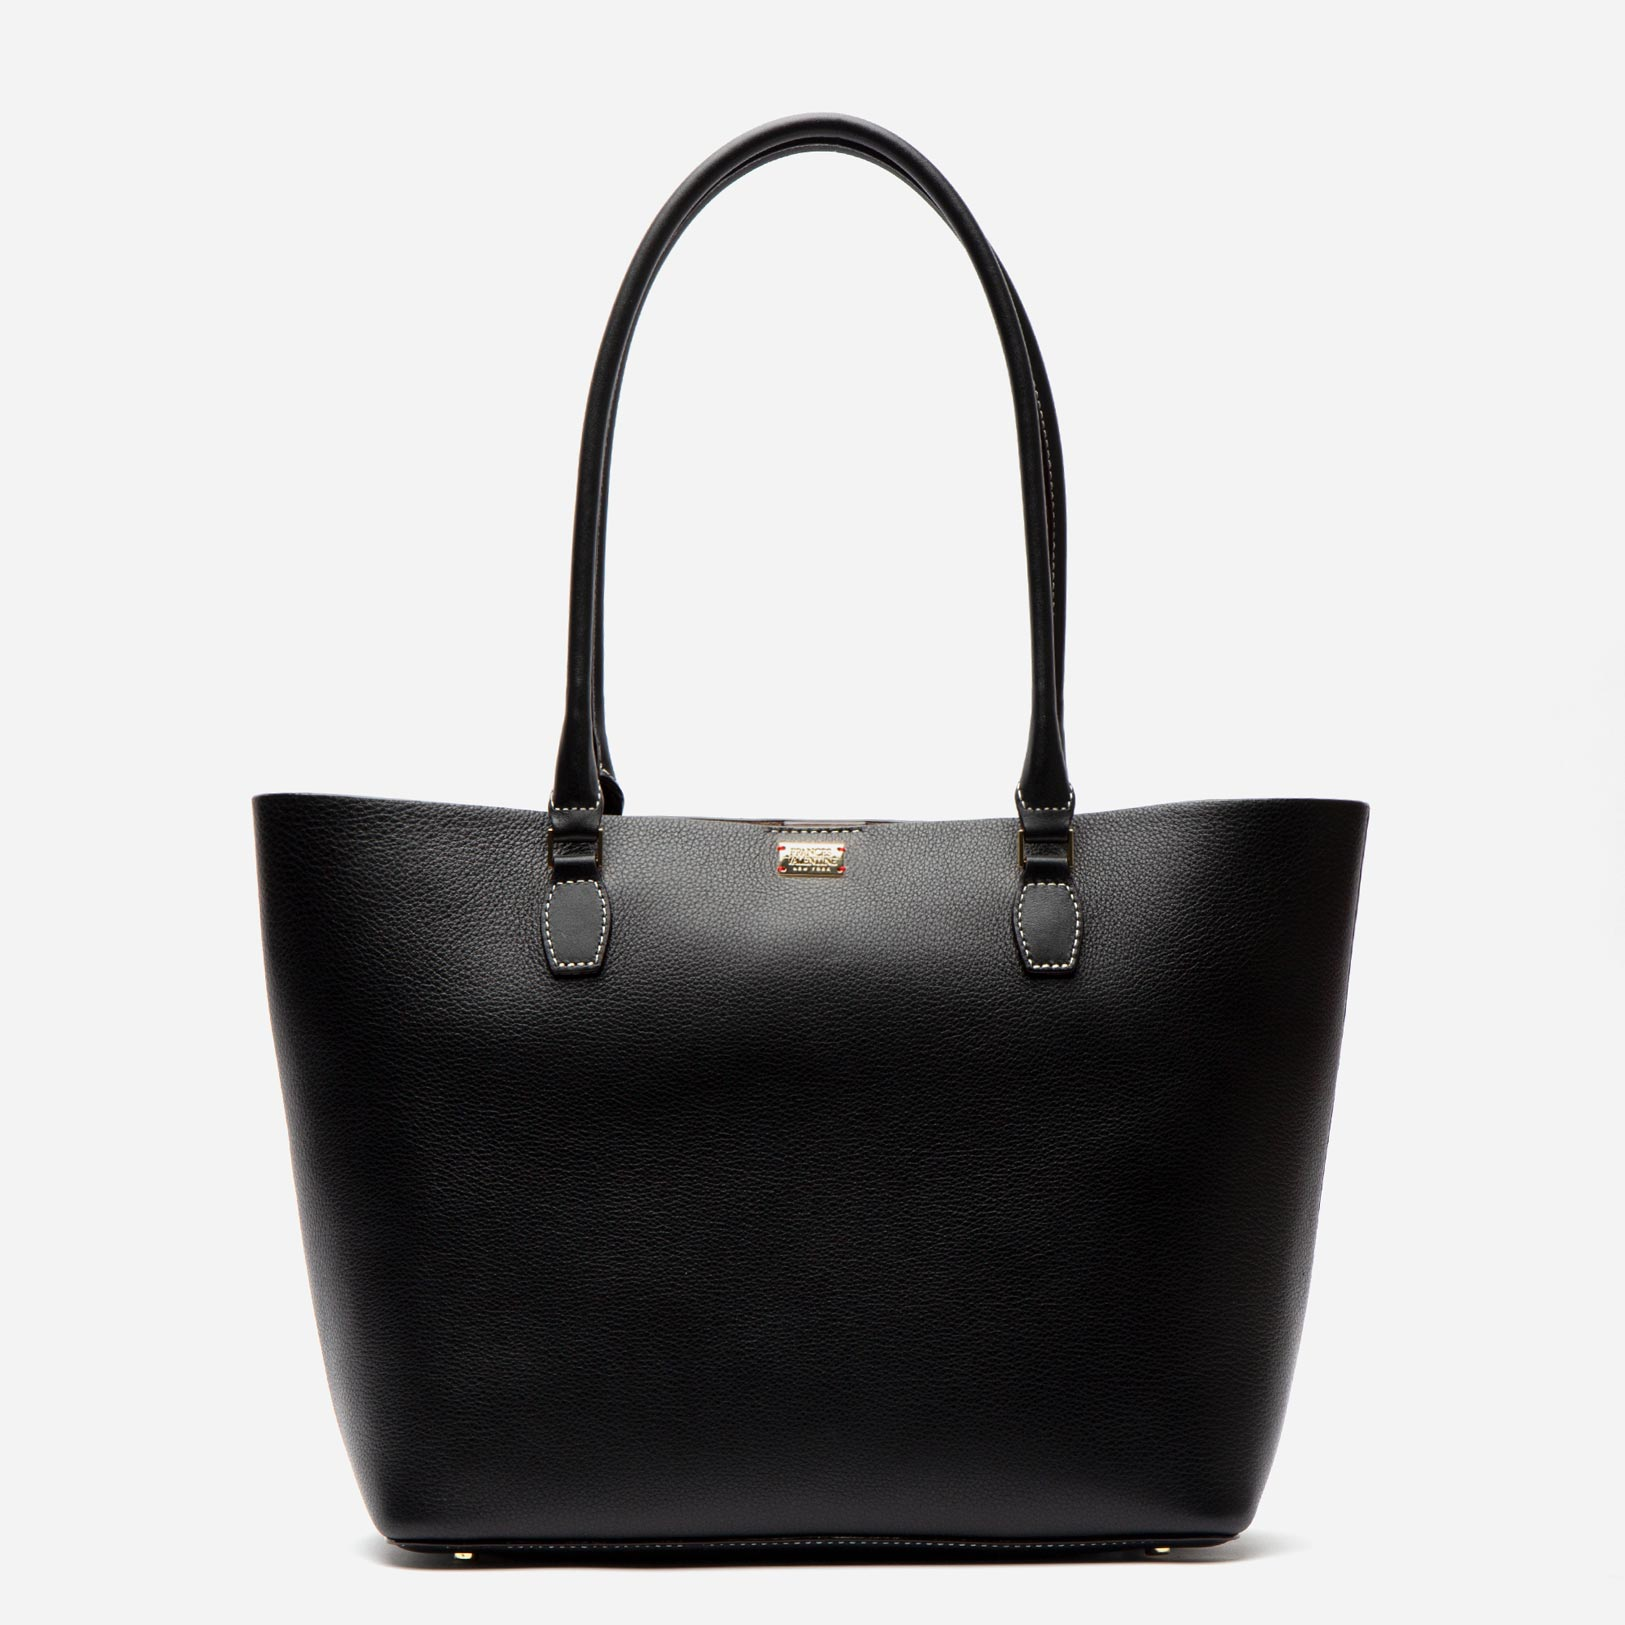 Medium Trixie Tumbled Leather Tote Black - Frances Valentine